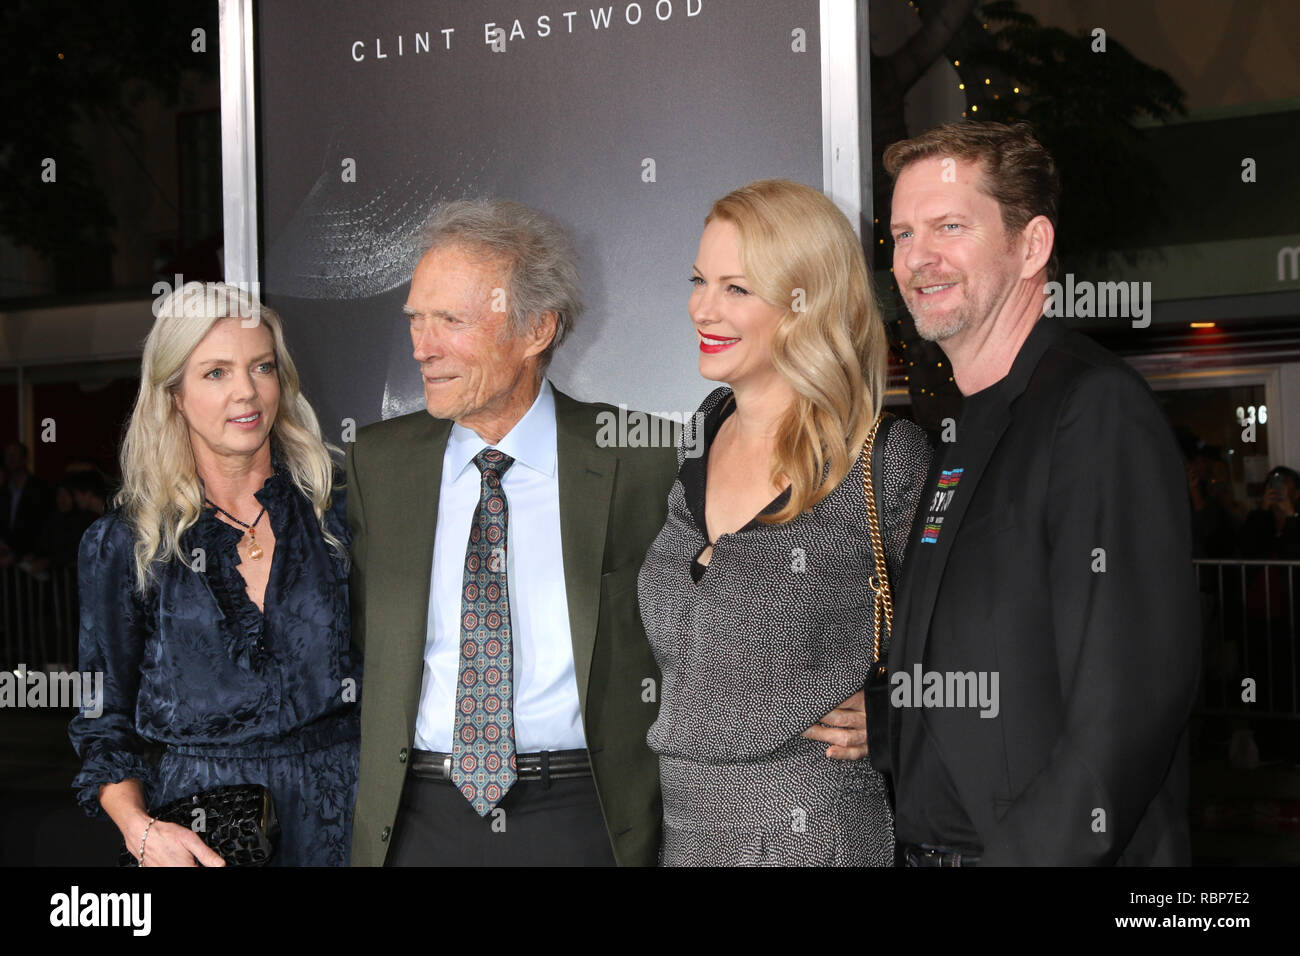 """""""The Mule"""" World Premiere at the Village Theater on December 10, 2018 in Westwood, CA  Featuring: Christina Sandera, Clint Eastwood, Alison Eastwood, Stacy Poitras Where: Westwood, California, United States When: 10 Dec 2018 Credit: Nicky Nelson/WENN.com Stock Photo"""